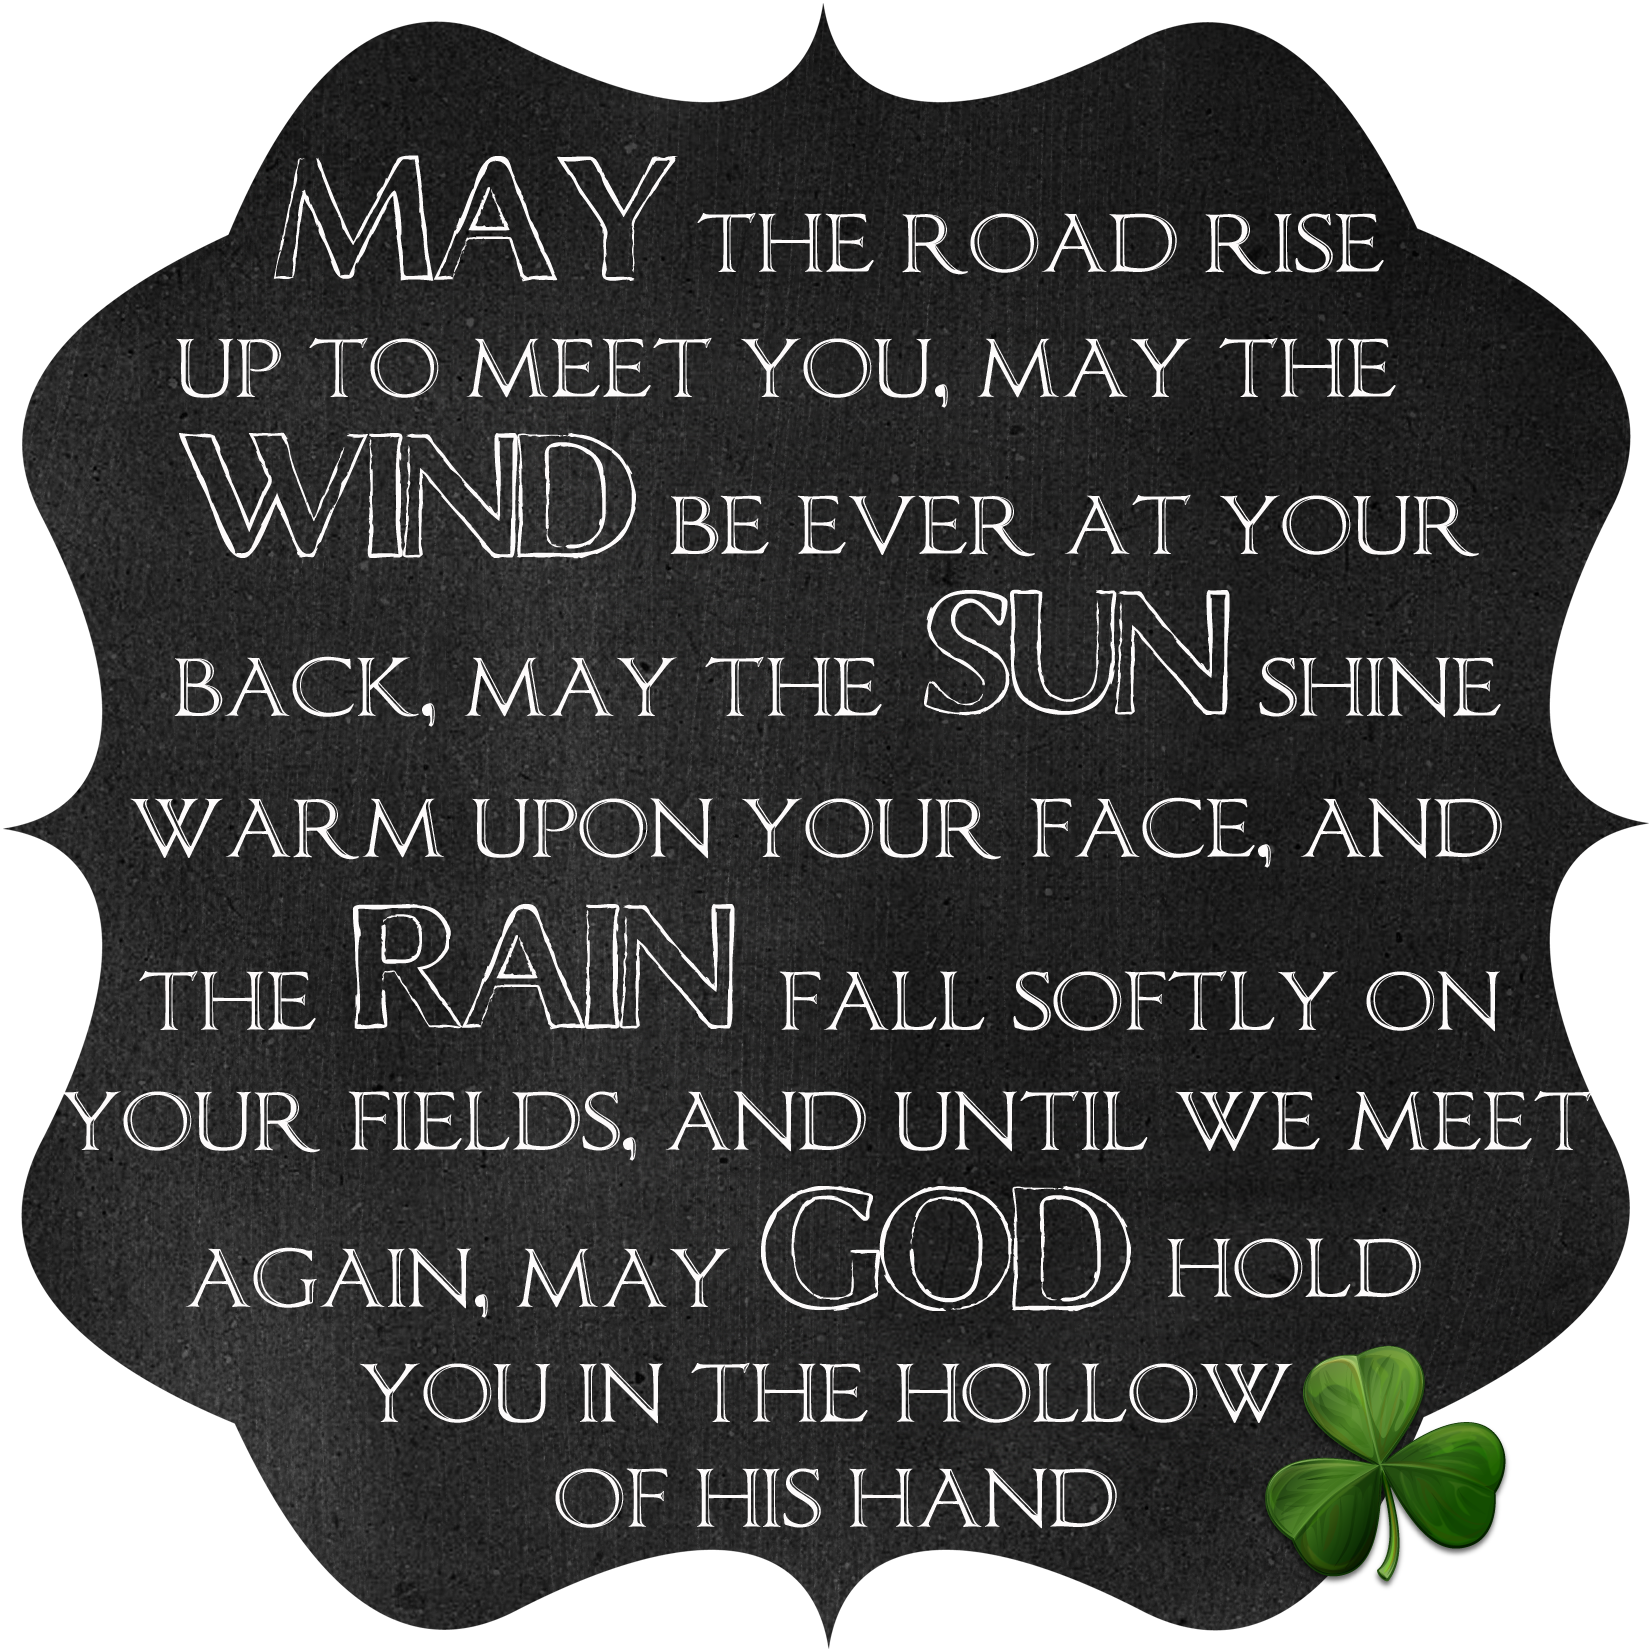 Irish Blessing Chalkboard Printable From  Too Much Time On My Hands